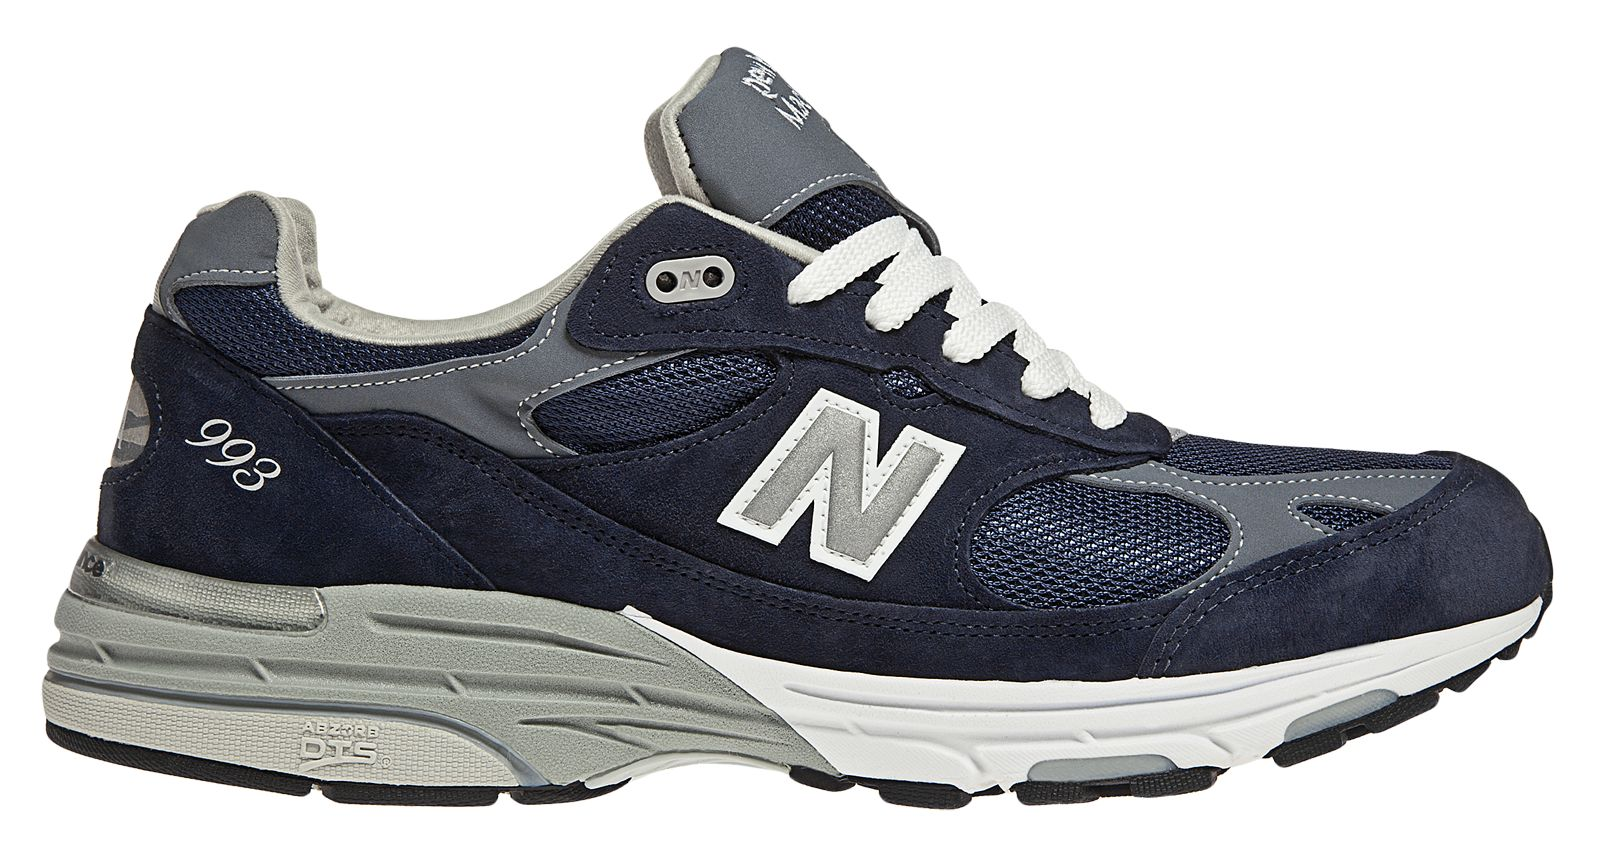 competitive price a3c6f 5ef93 Details about New Balance Men's Classic 993 Running Shoes Navy